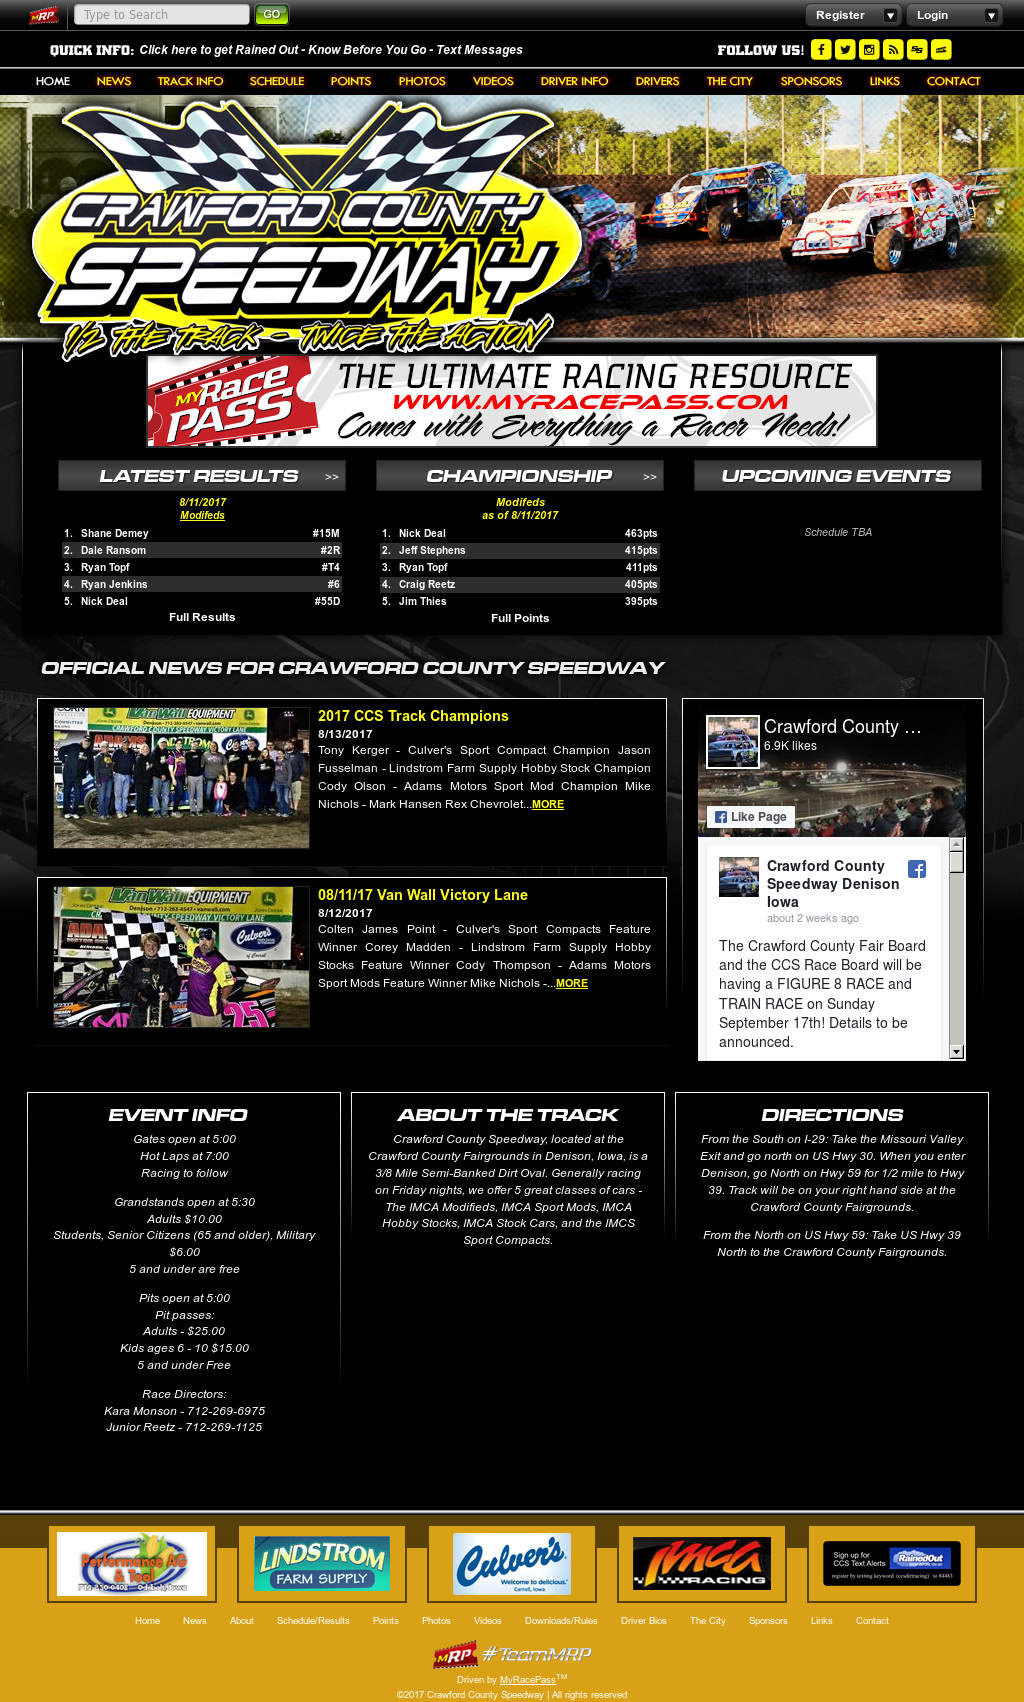 Crawford County Speedway Denison Iowa website history